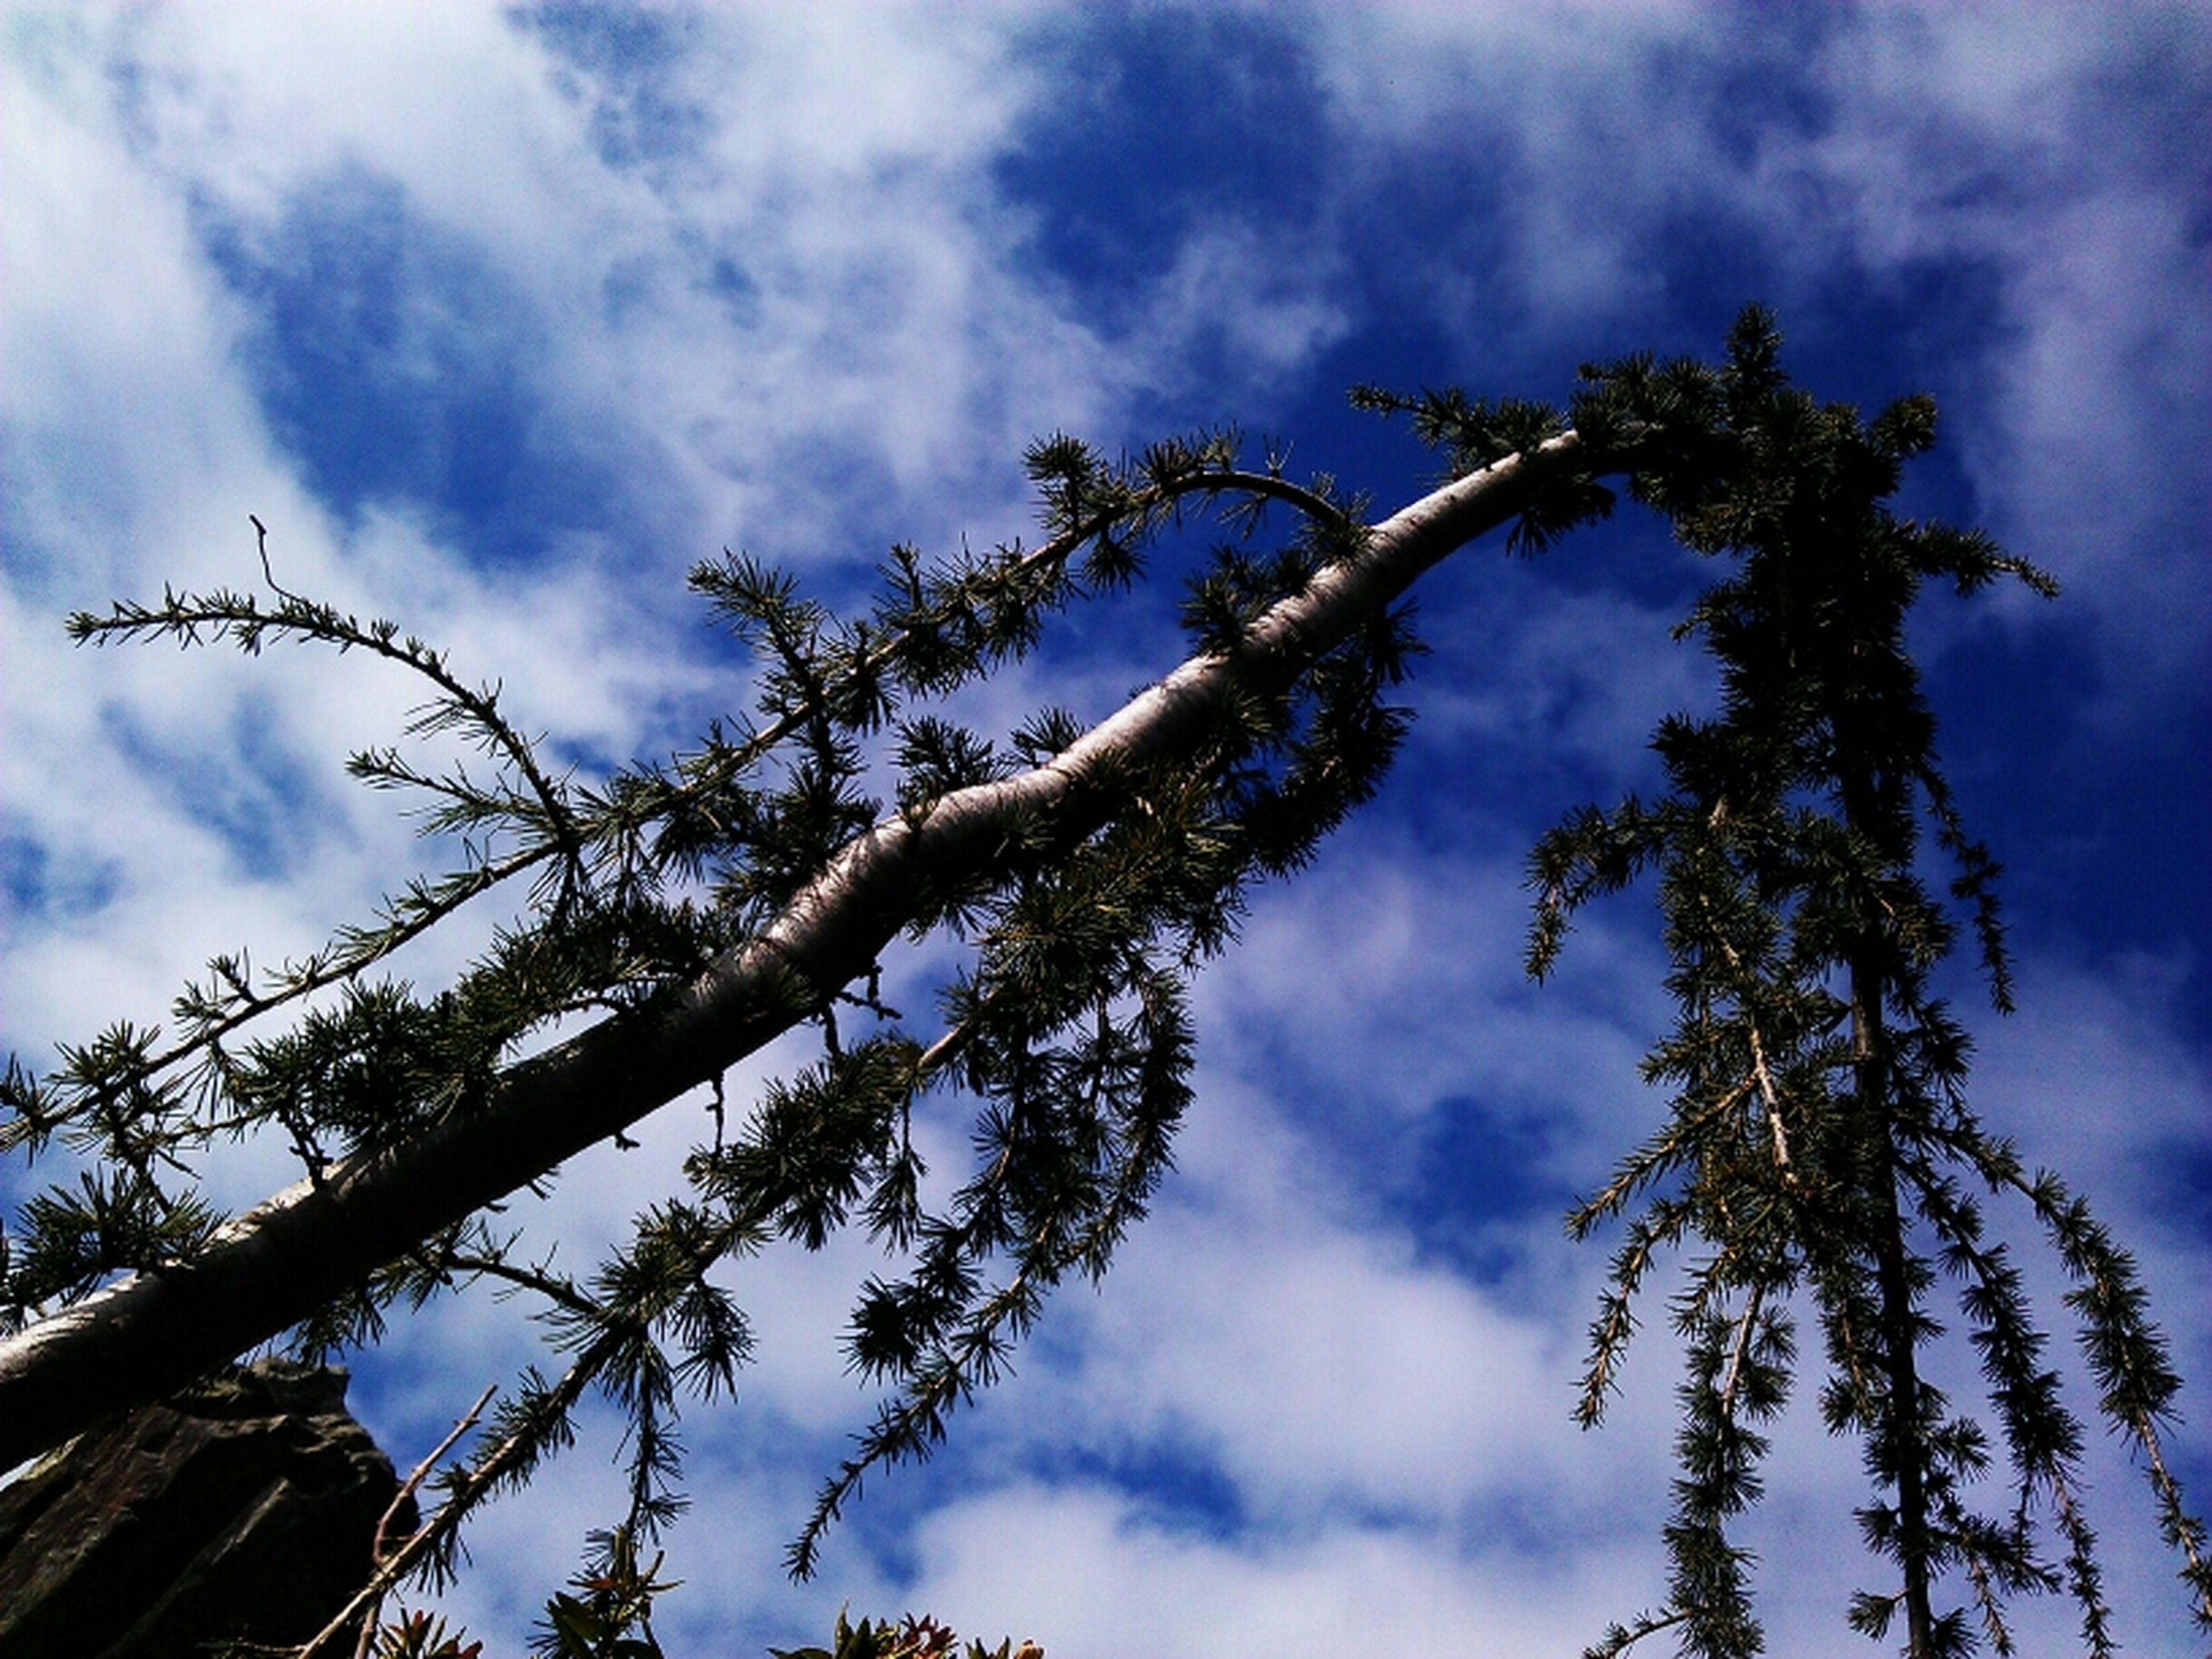 low angle view, sky, cloud - sky, cloudy, tree, cloud, nature, tranquility, growth, beauty in nature, silhouette, outdoors, branch, day, no people, blue, high section, weather, scenics, overcast